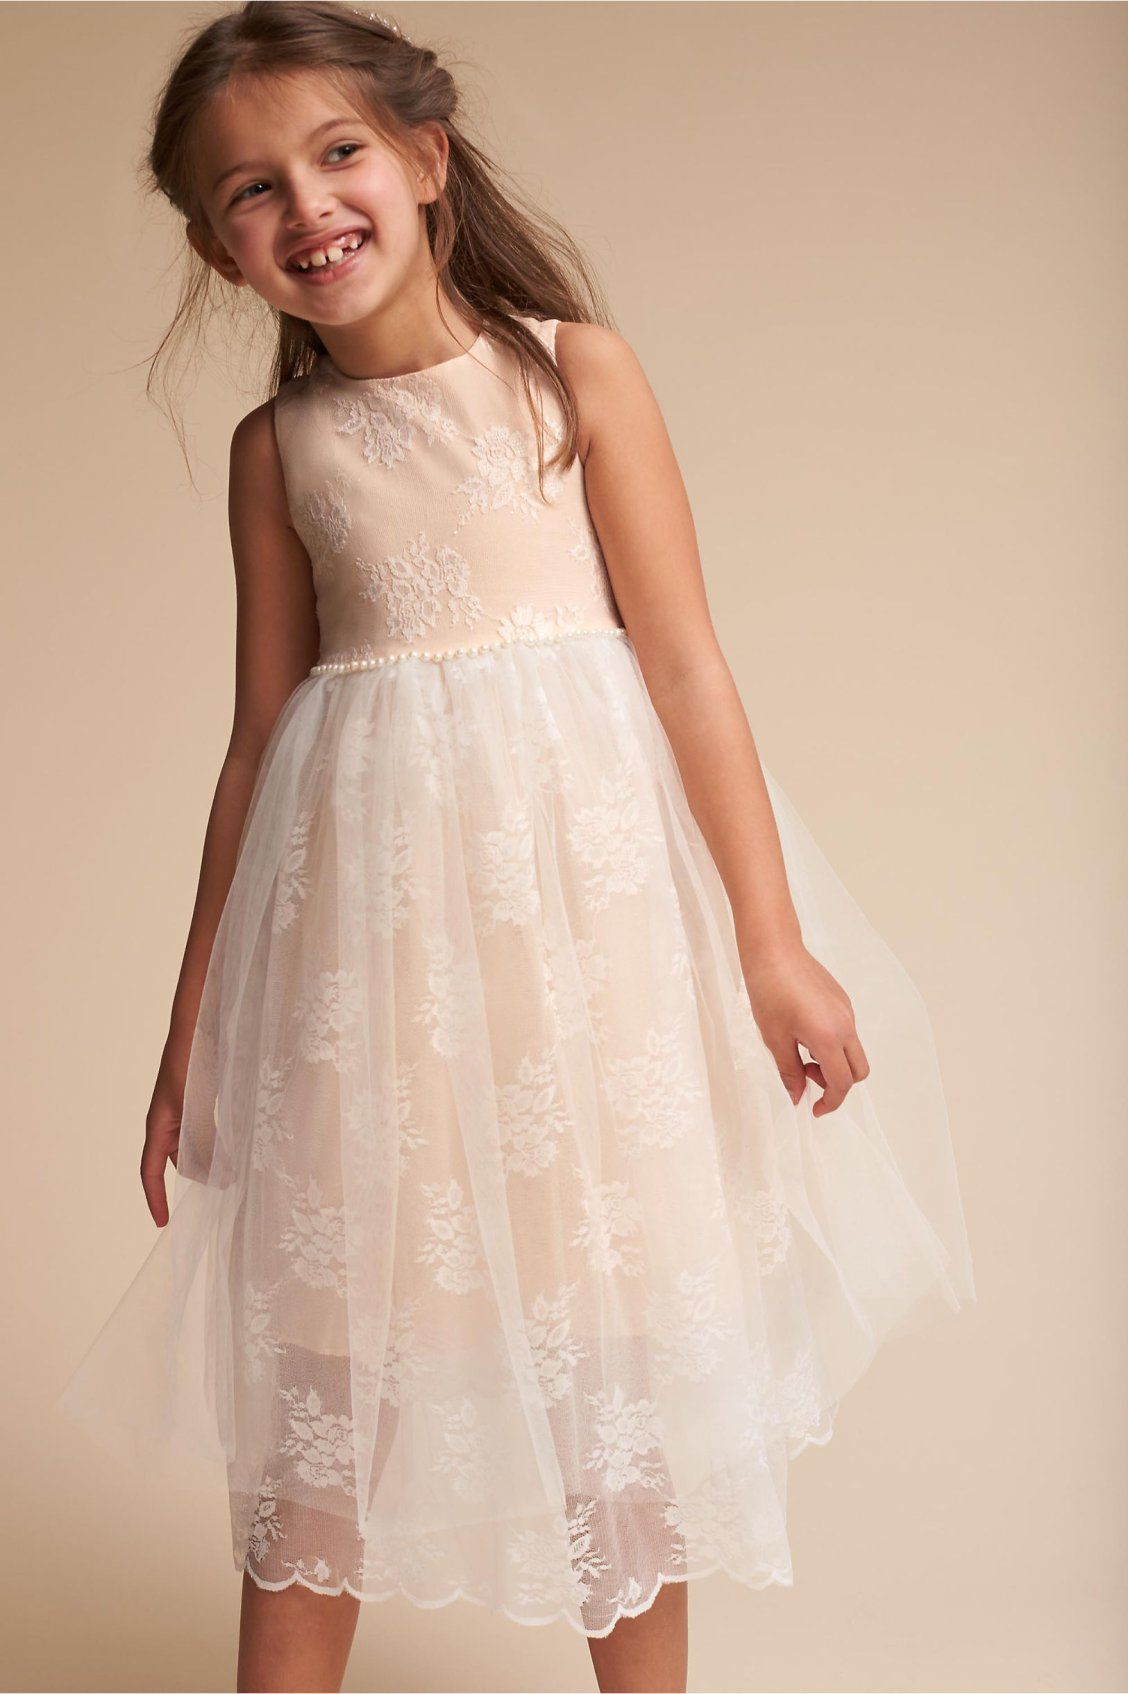 fcc3ad06c1 Alix Dress from BHLDN. Alix Dress from BHLDN Lace Flower Girls